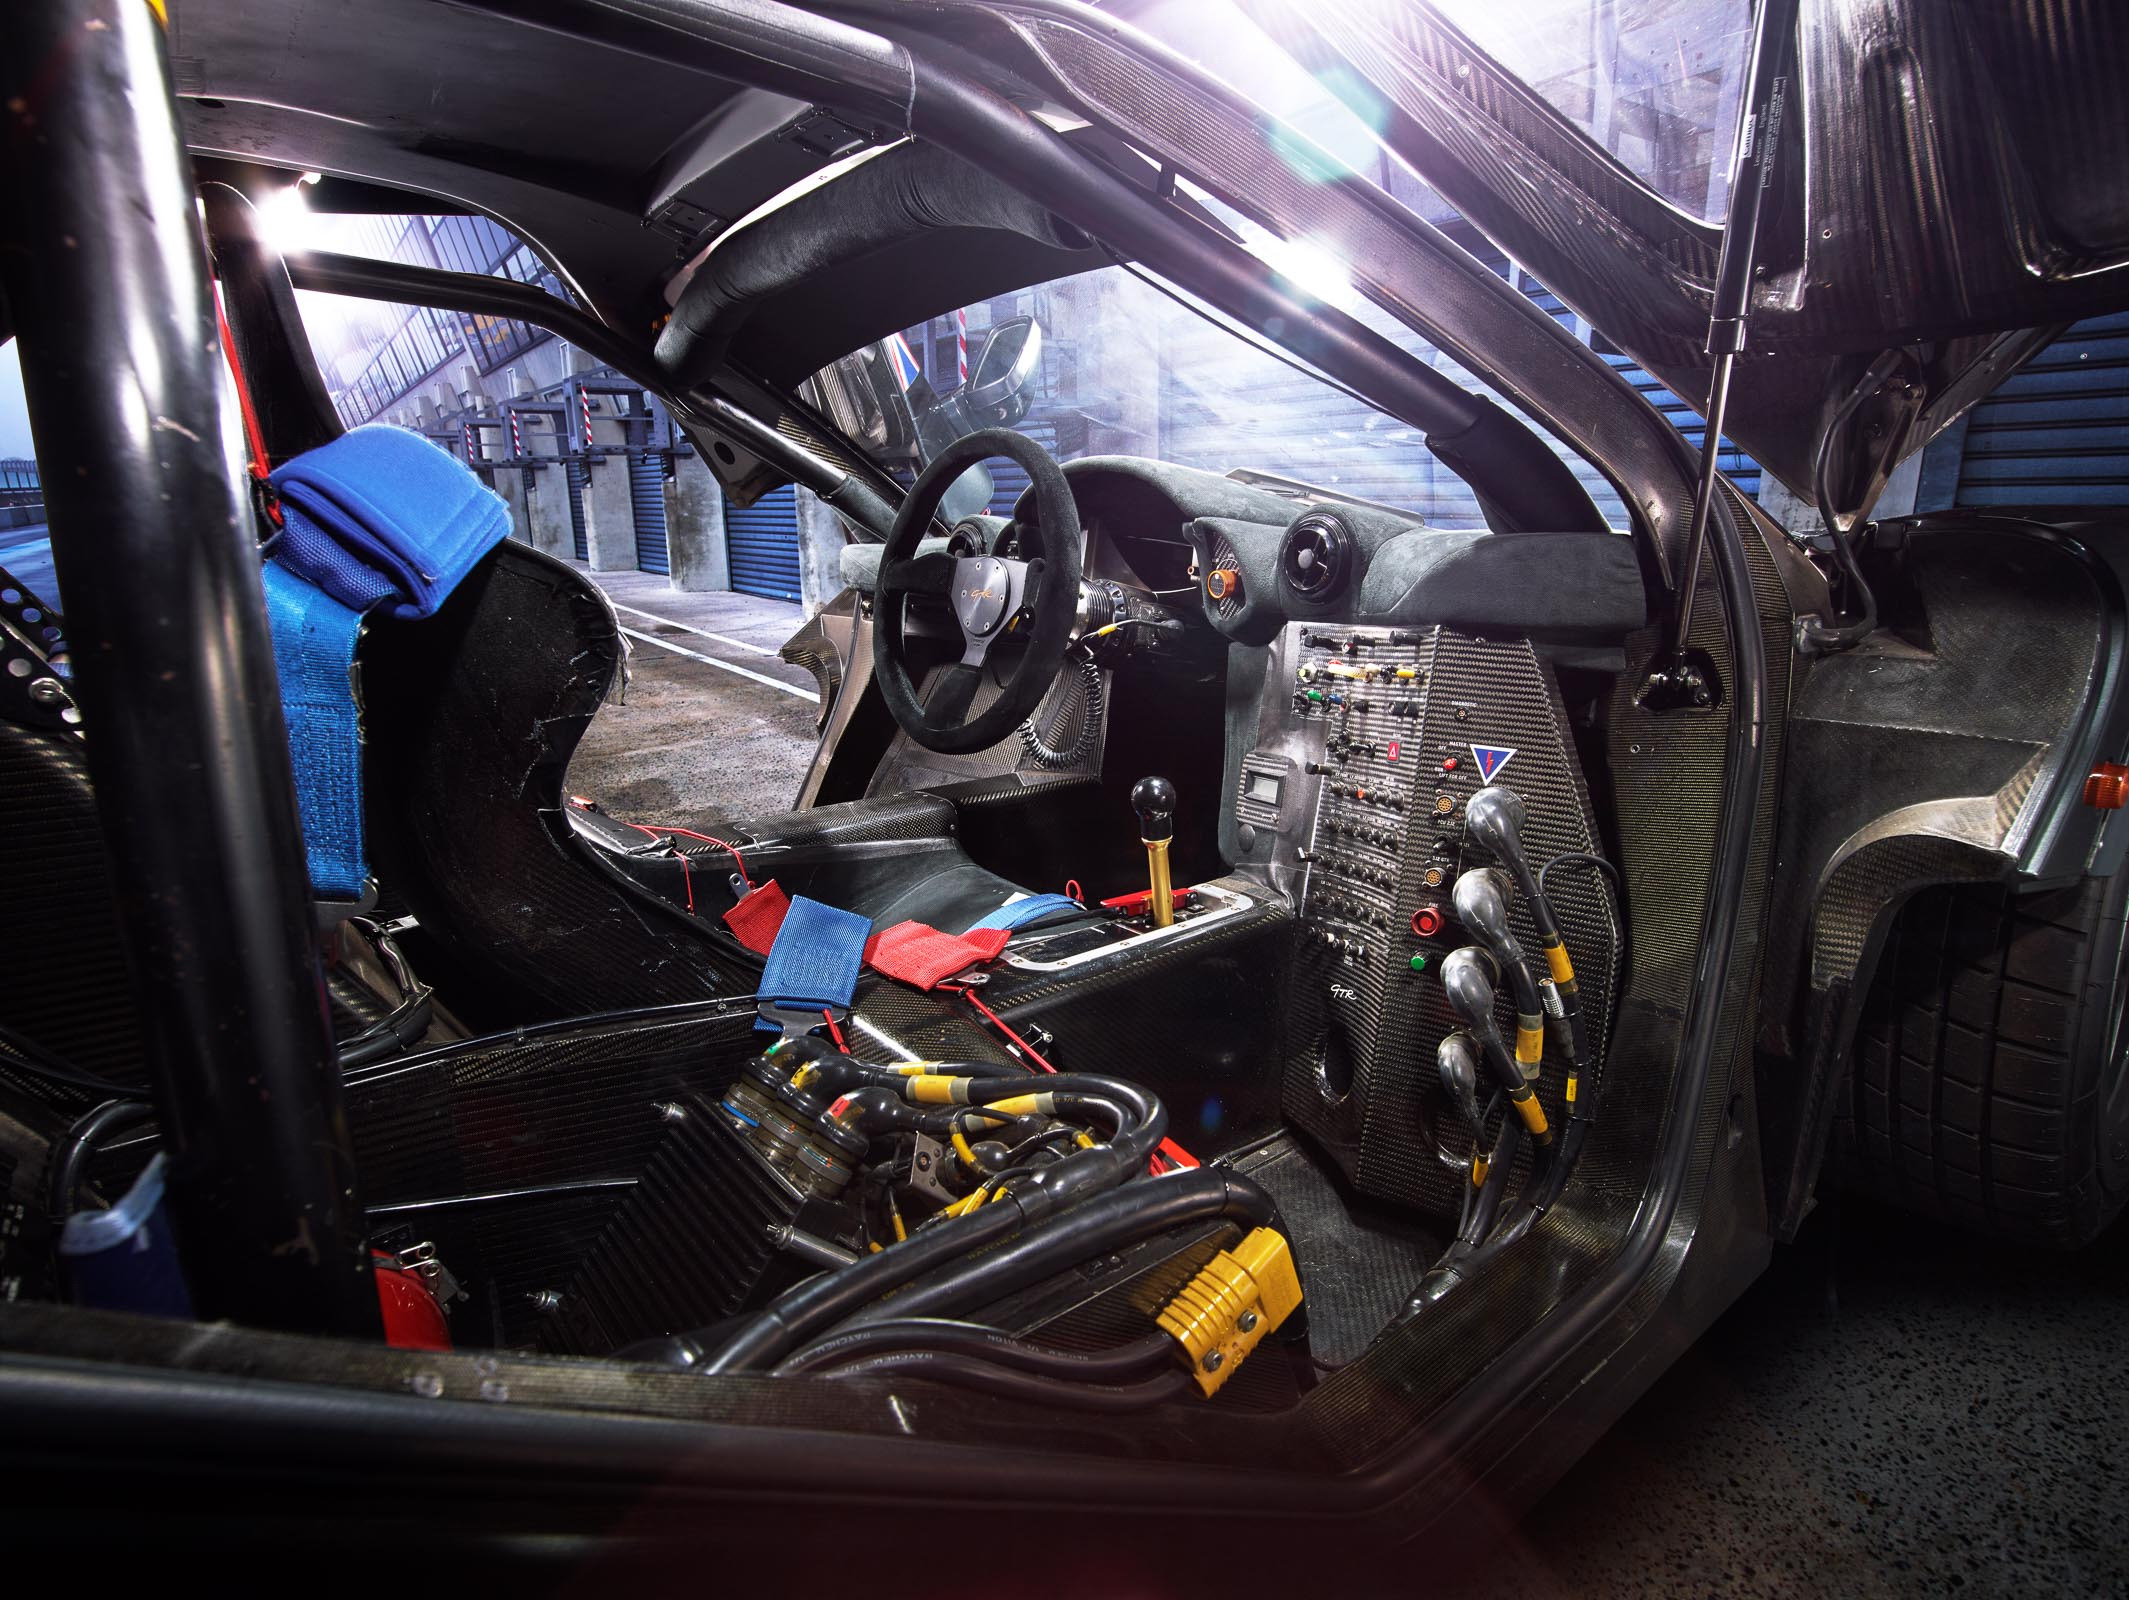 McLaren F1 GTR - interior / intérieur - photo Alex Howe